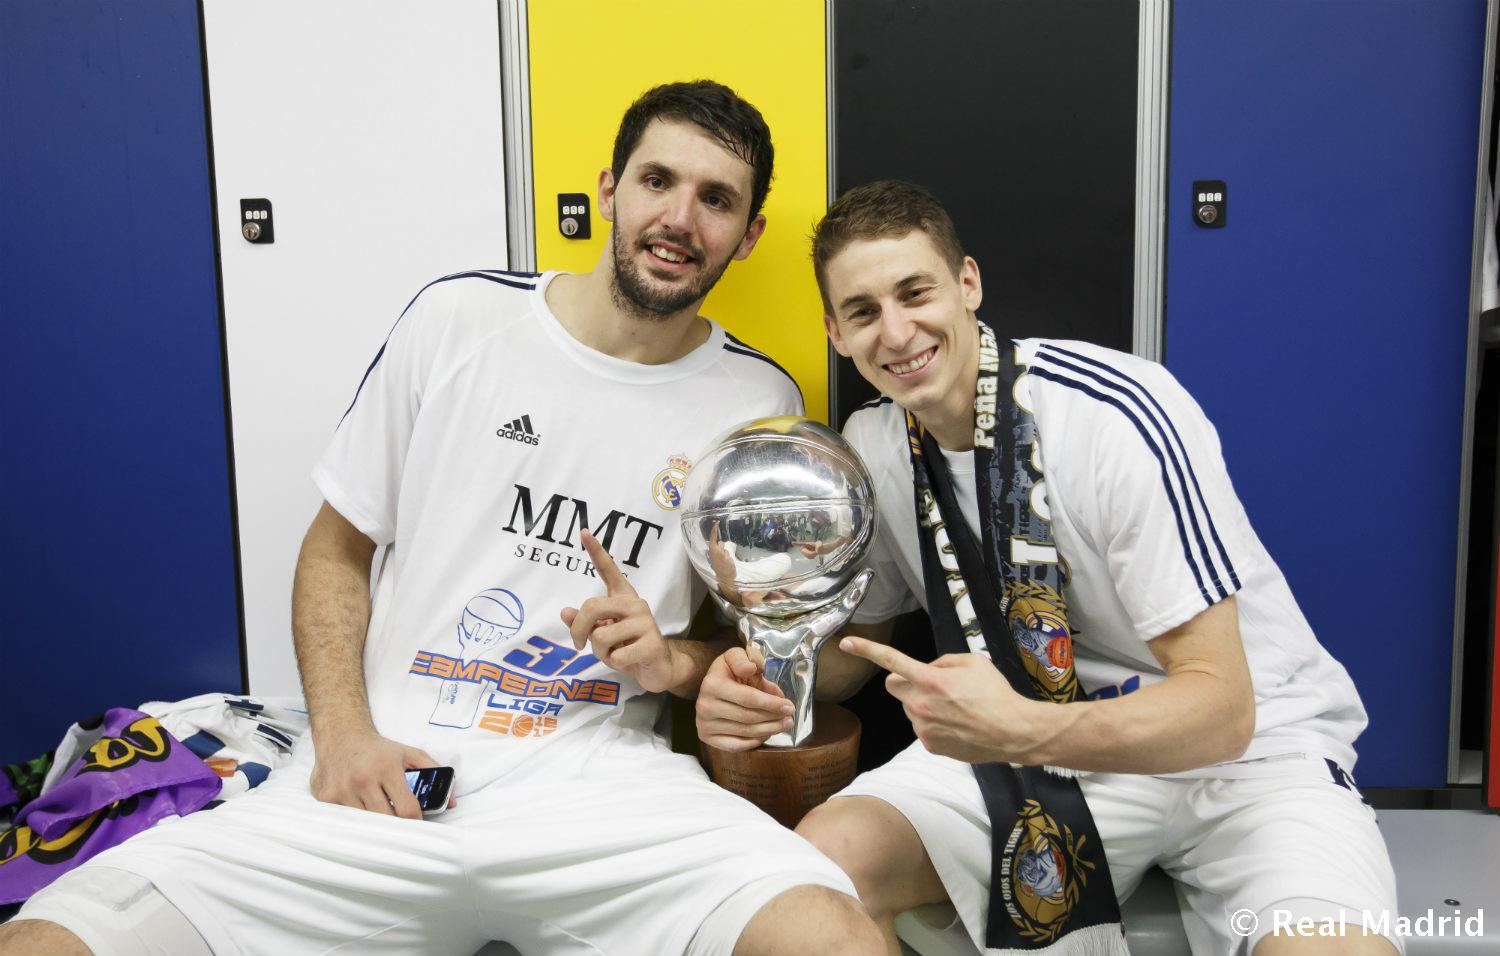 Real Madrid - Carroll y Mirotic - 27-01-2014